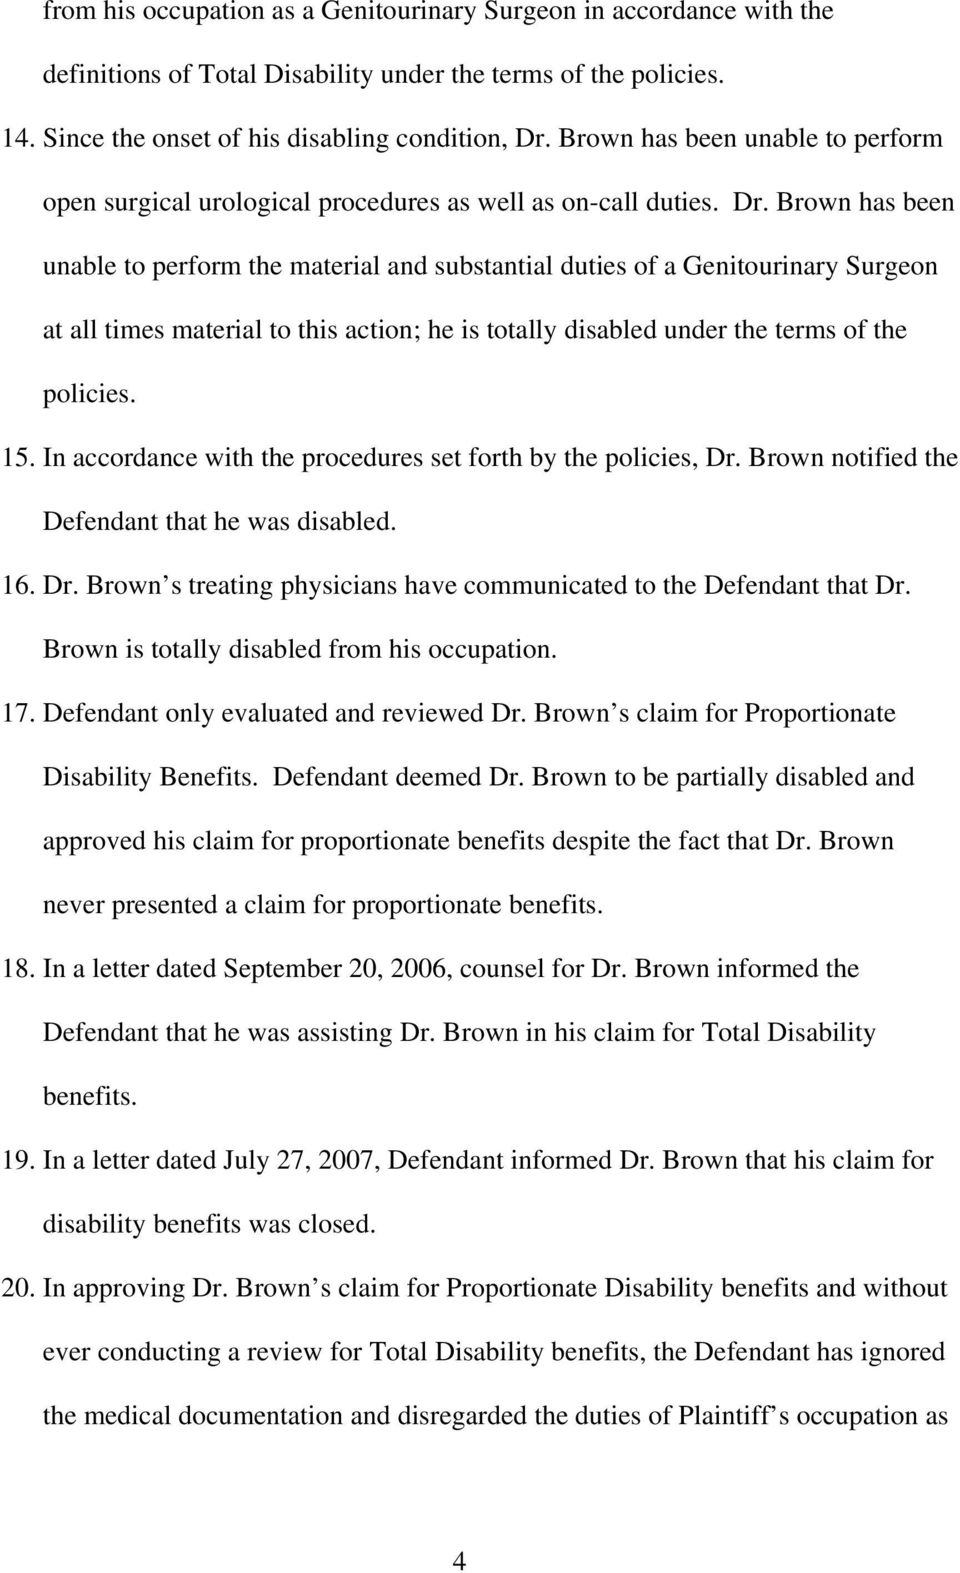 Brown has been unable to perform the material and substantial duties of a Genitourinary Surgeon at all times material to this action; he is totally disabled under the terms of the policies. 15.